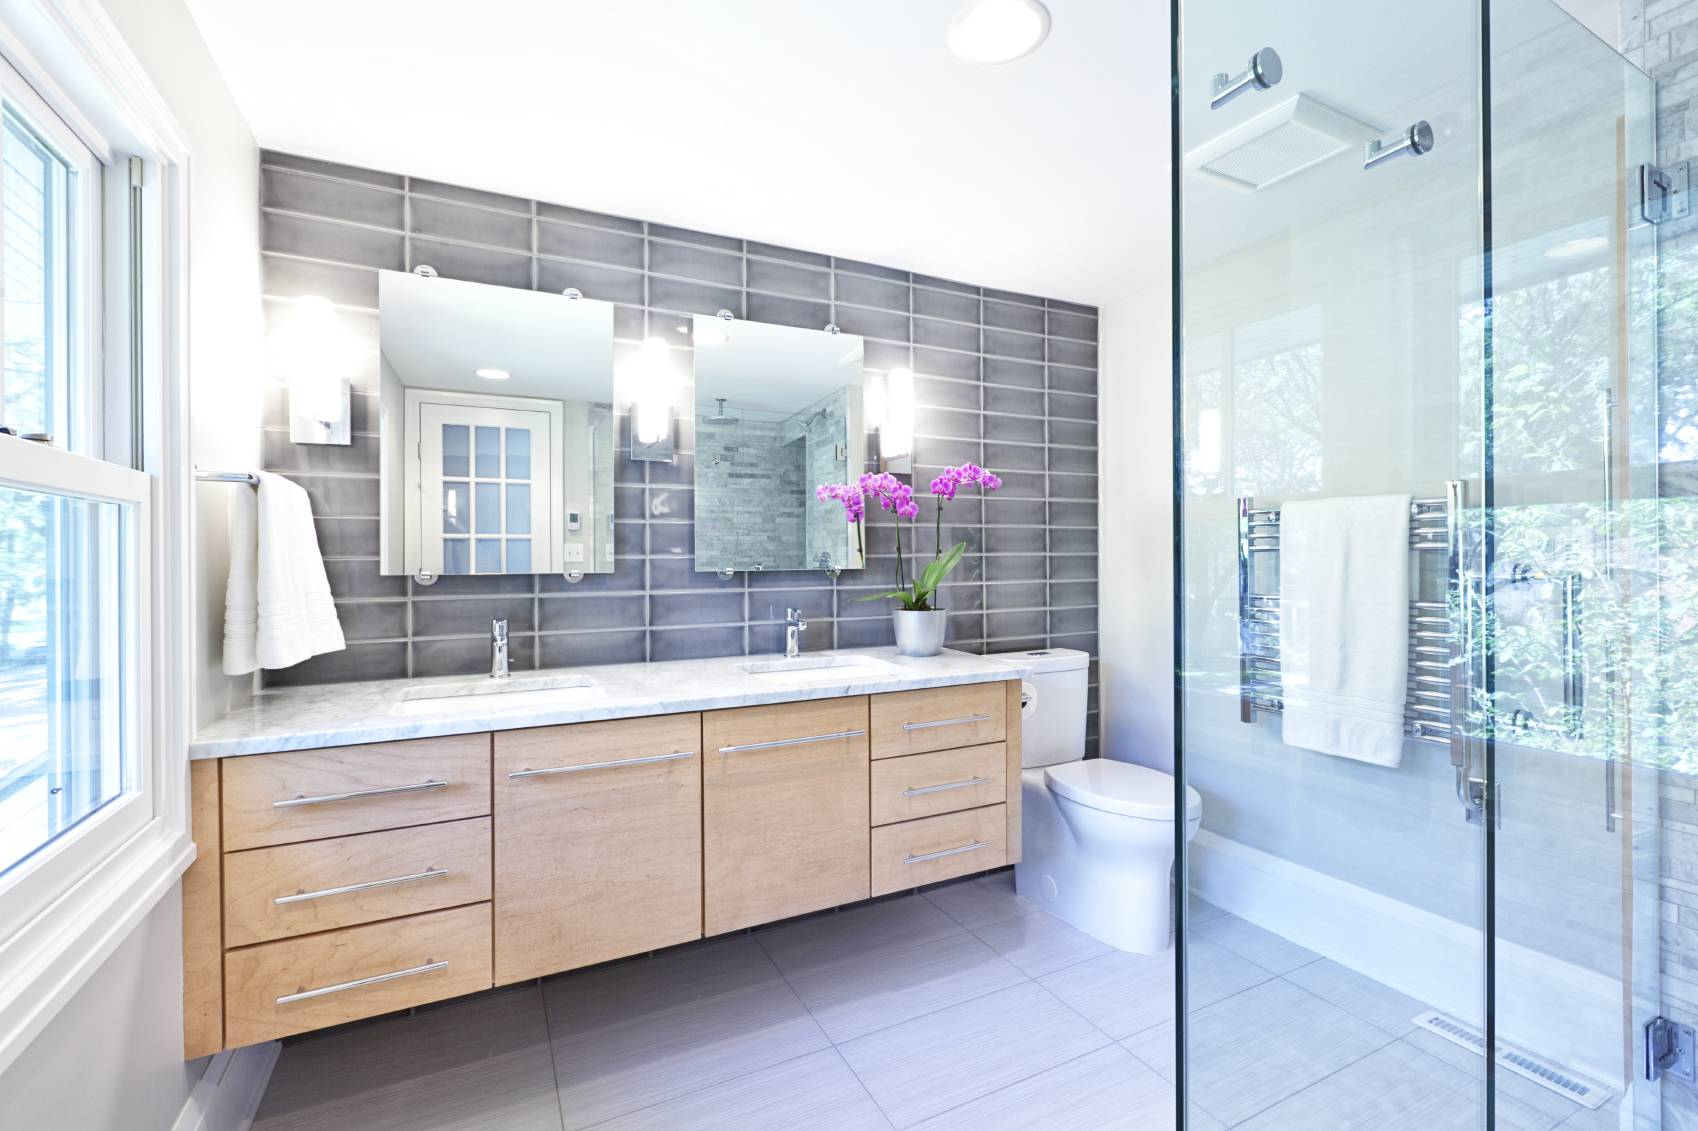 Comment agencer une salle de bain awesome agencement for Agencer une petite salle de bain